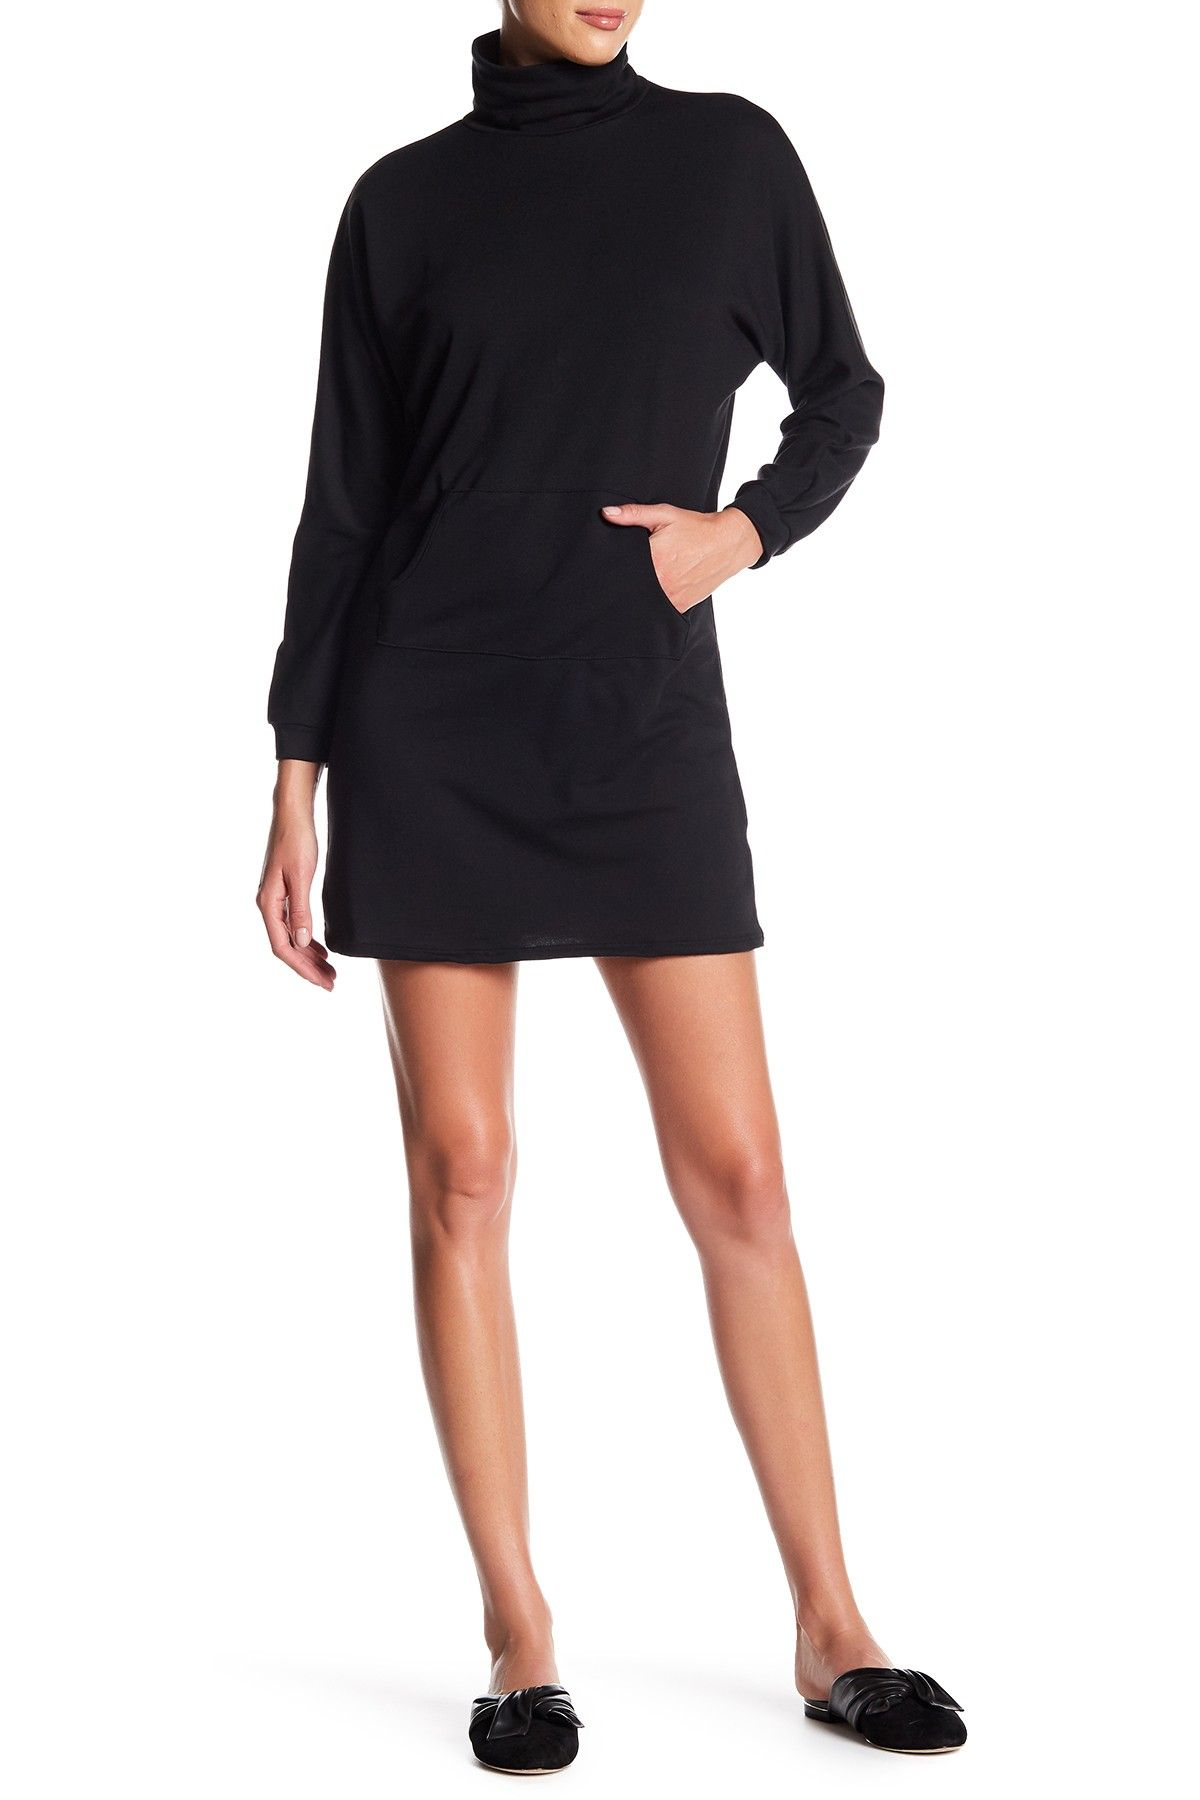 Slouchy turtleneck dress turtleneck dress products and free shipping